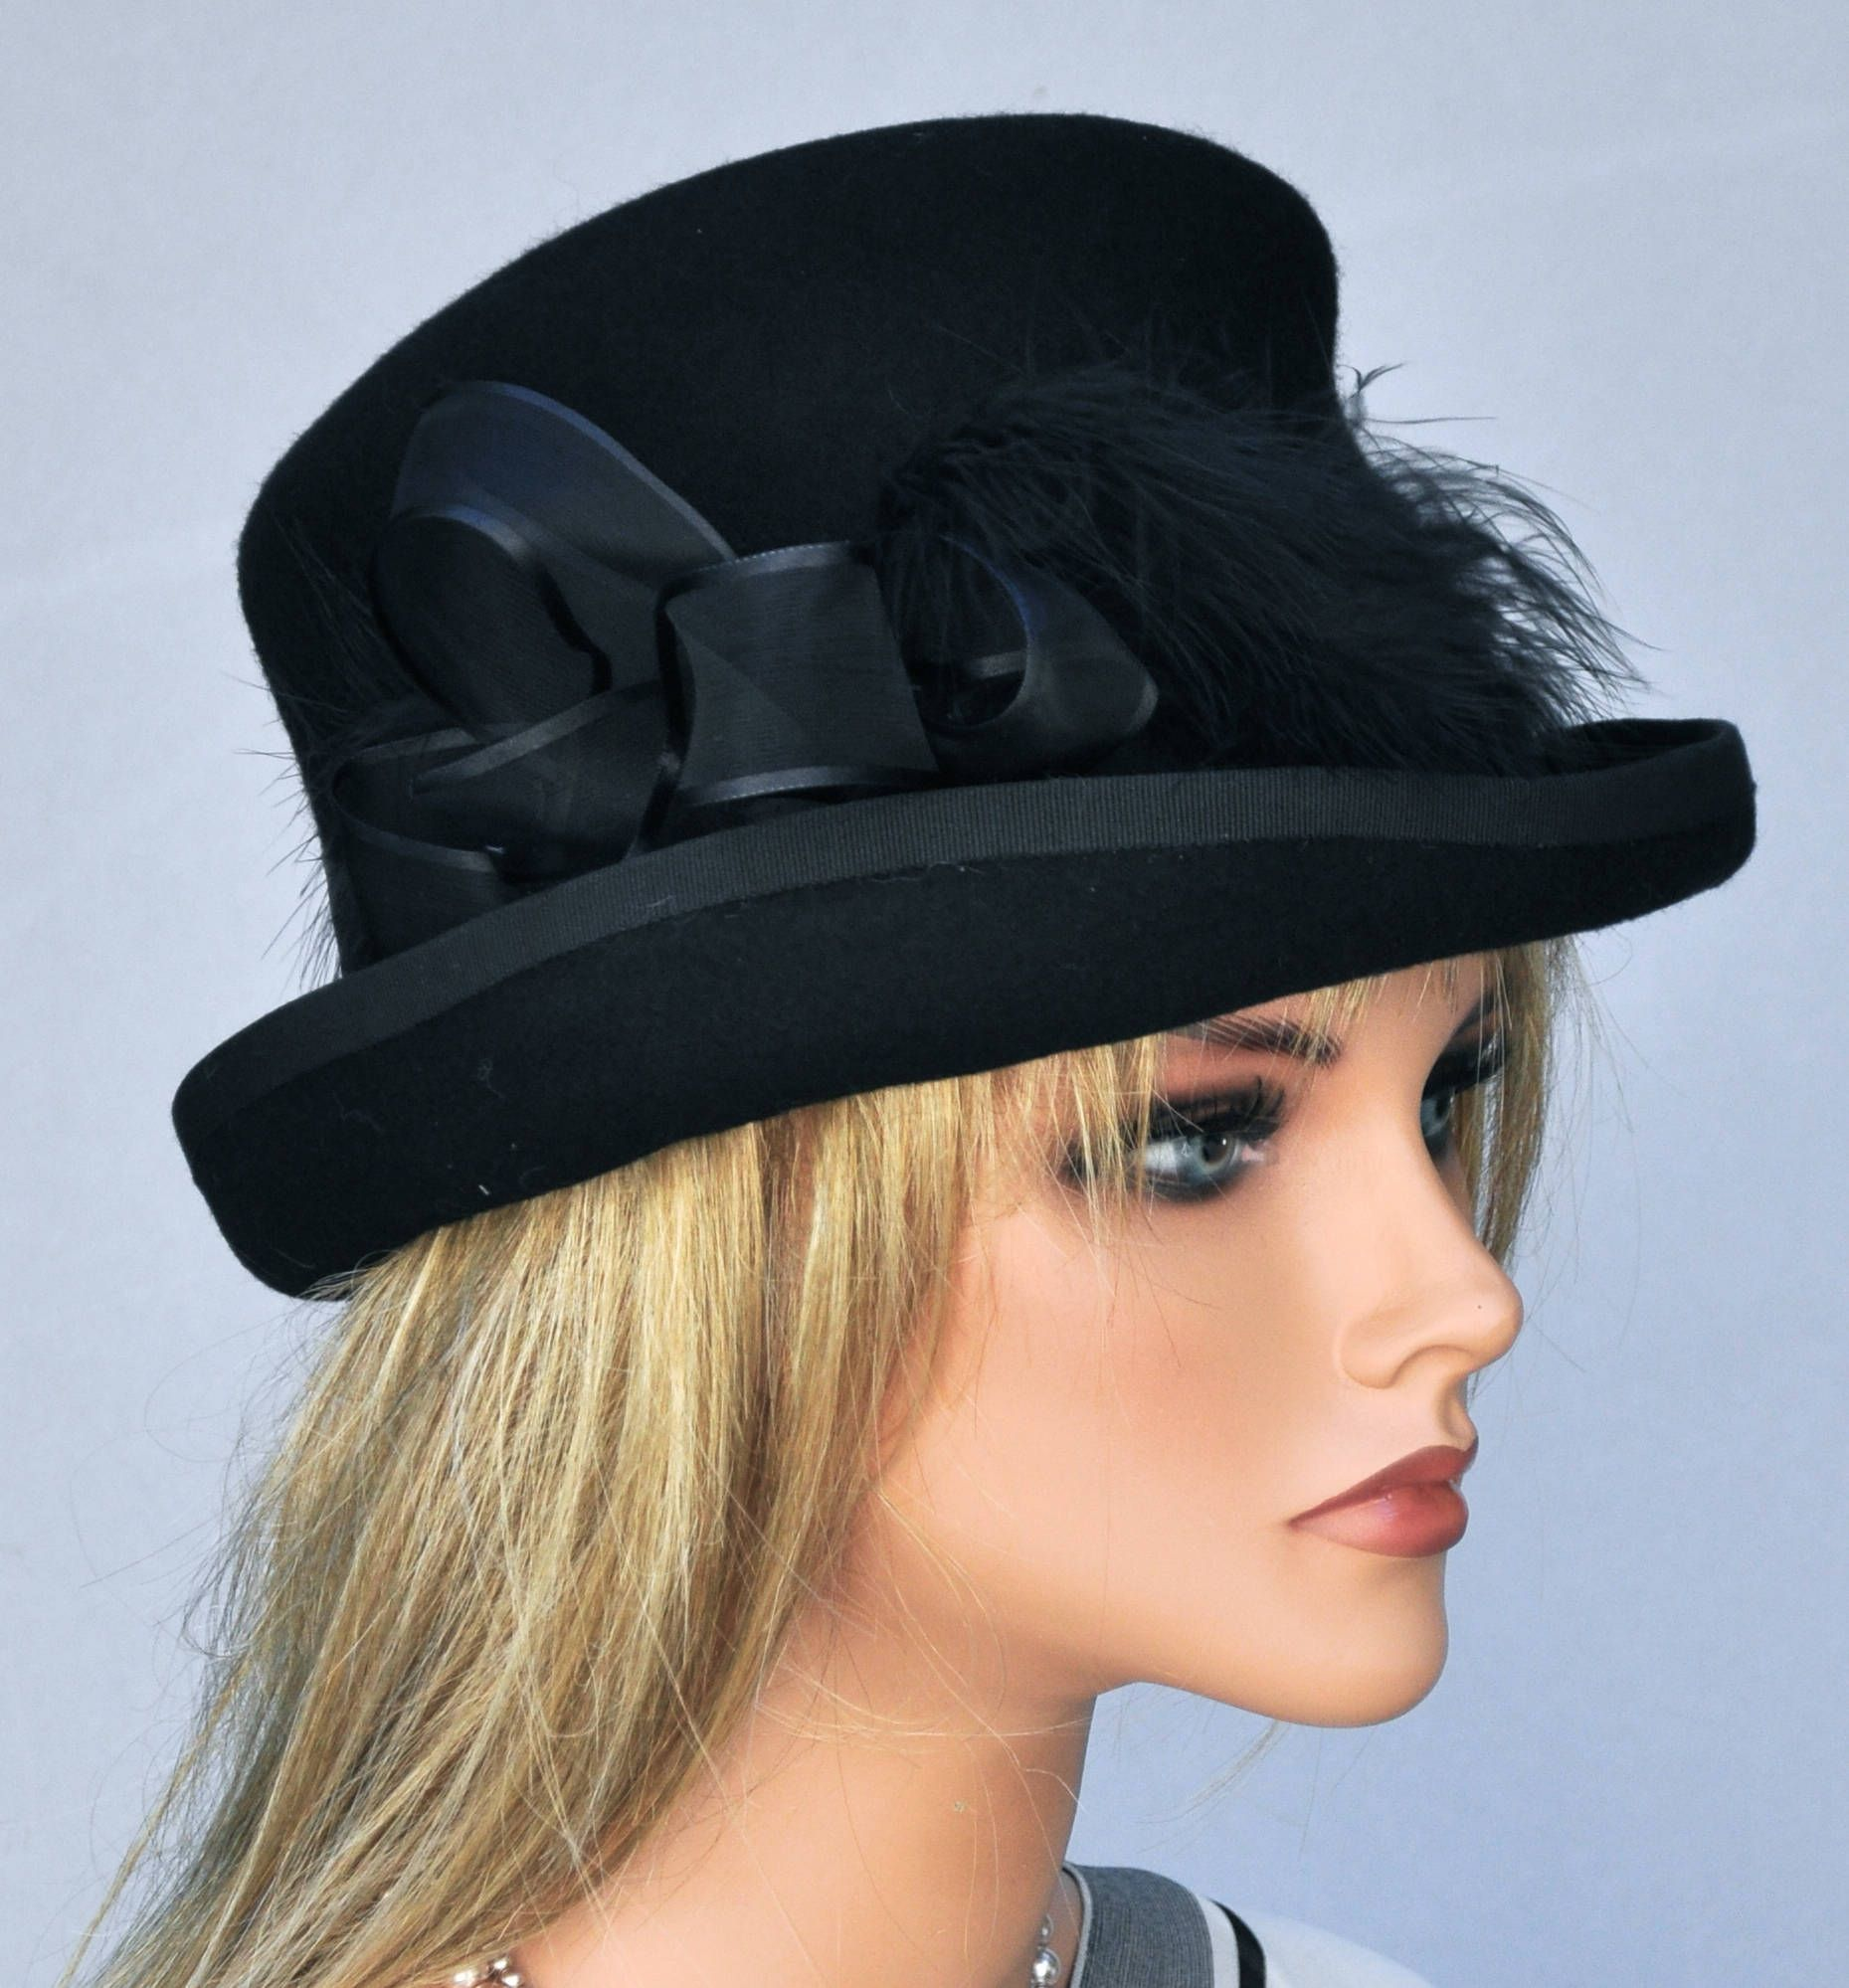 55e4505575354e Black Wool Felt Hat, Top Hat, Ladies Winter Hat, Formal Hat, Funeral Hat, Women's  Black Hat, Victorian English Riding Hat Event Occasion Hat